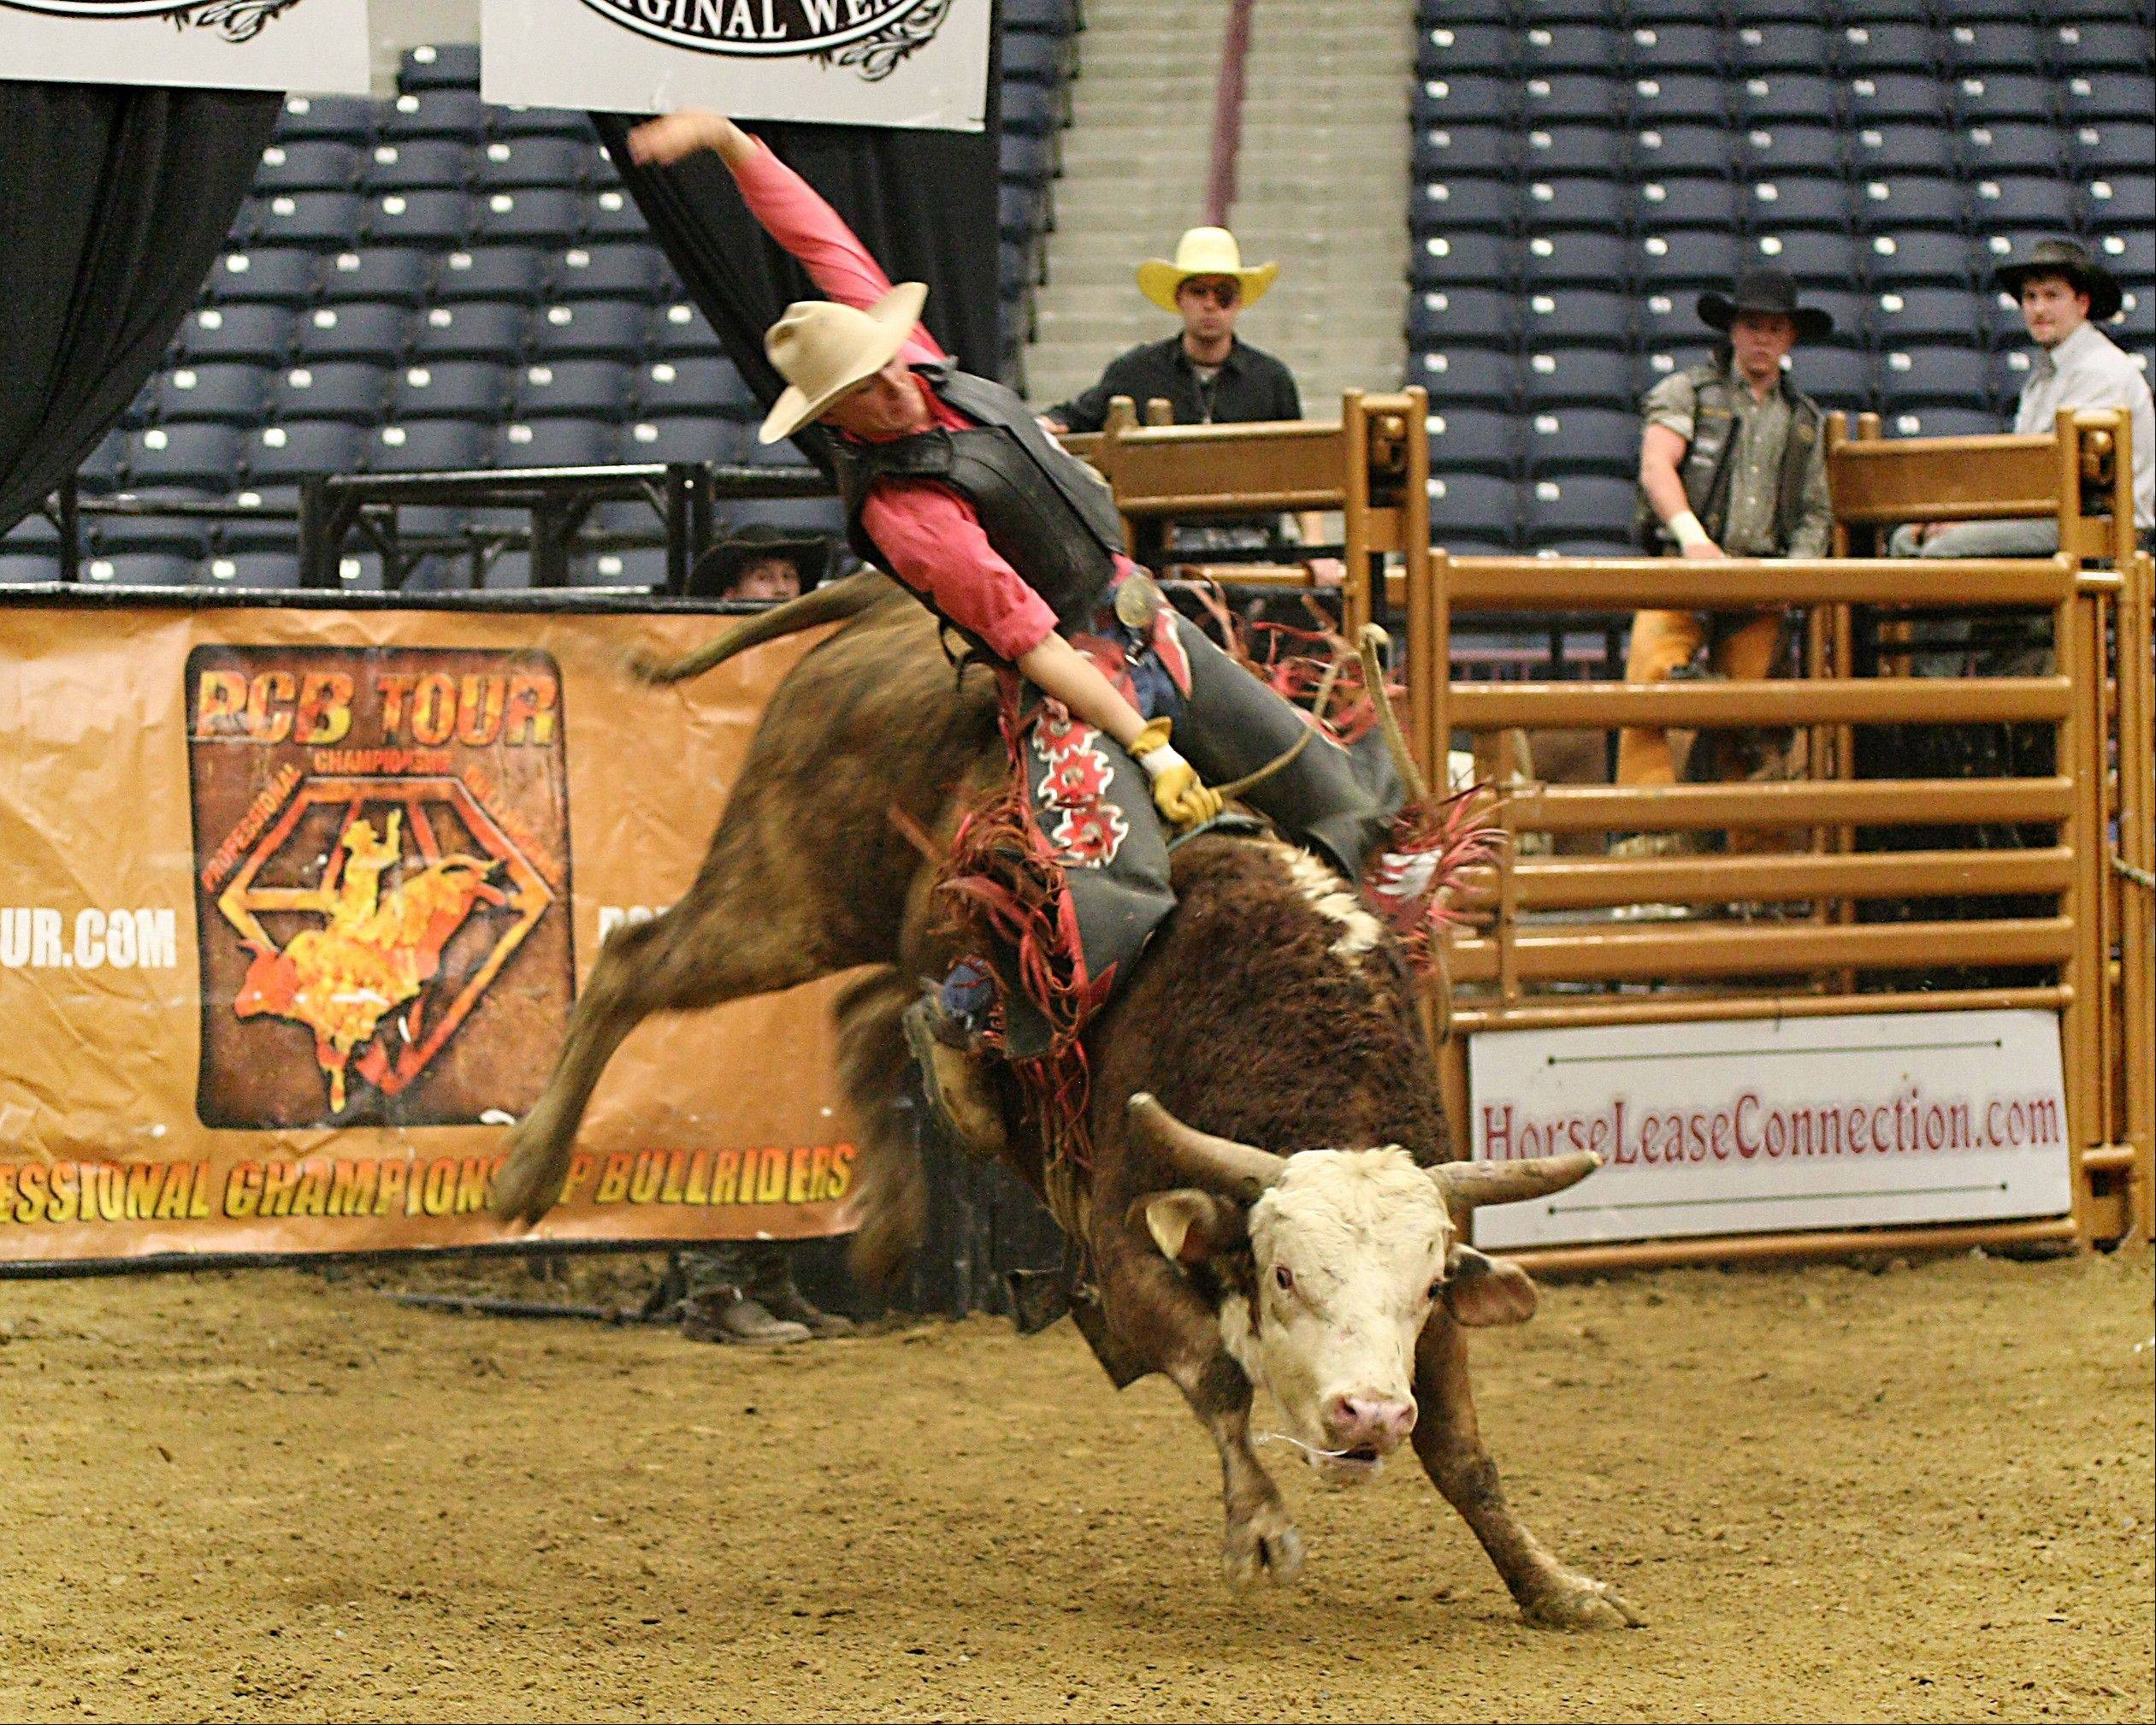 Courtesy Sears Centre ArenaThe Professional Championship Bullriders World Tour Finale VIII comes to the Sears Centre Arena in Hoffman Estates on Friday and Saturday, Jan. 31 and Feb. 1.